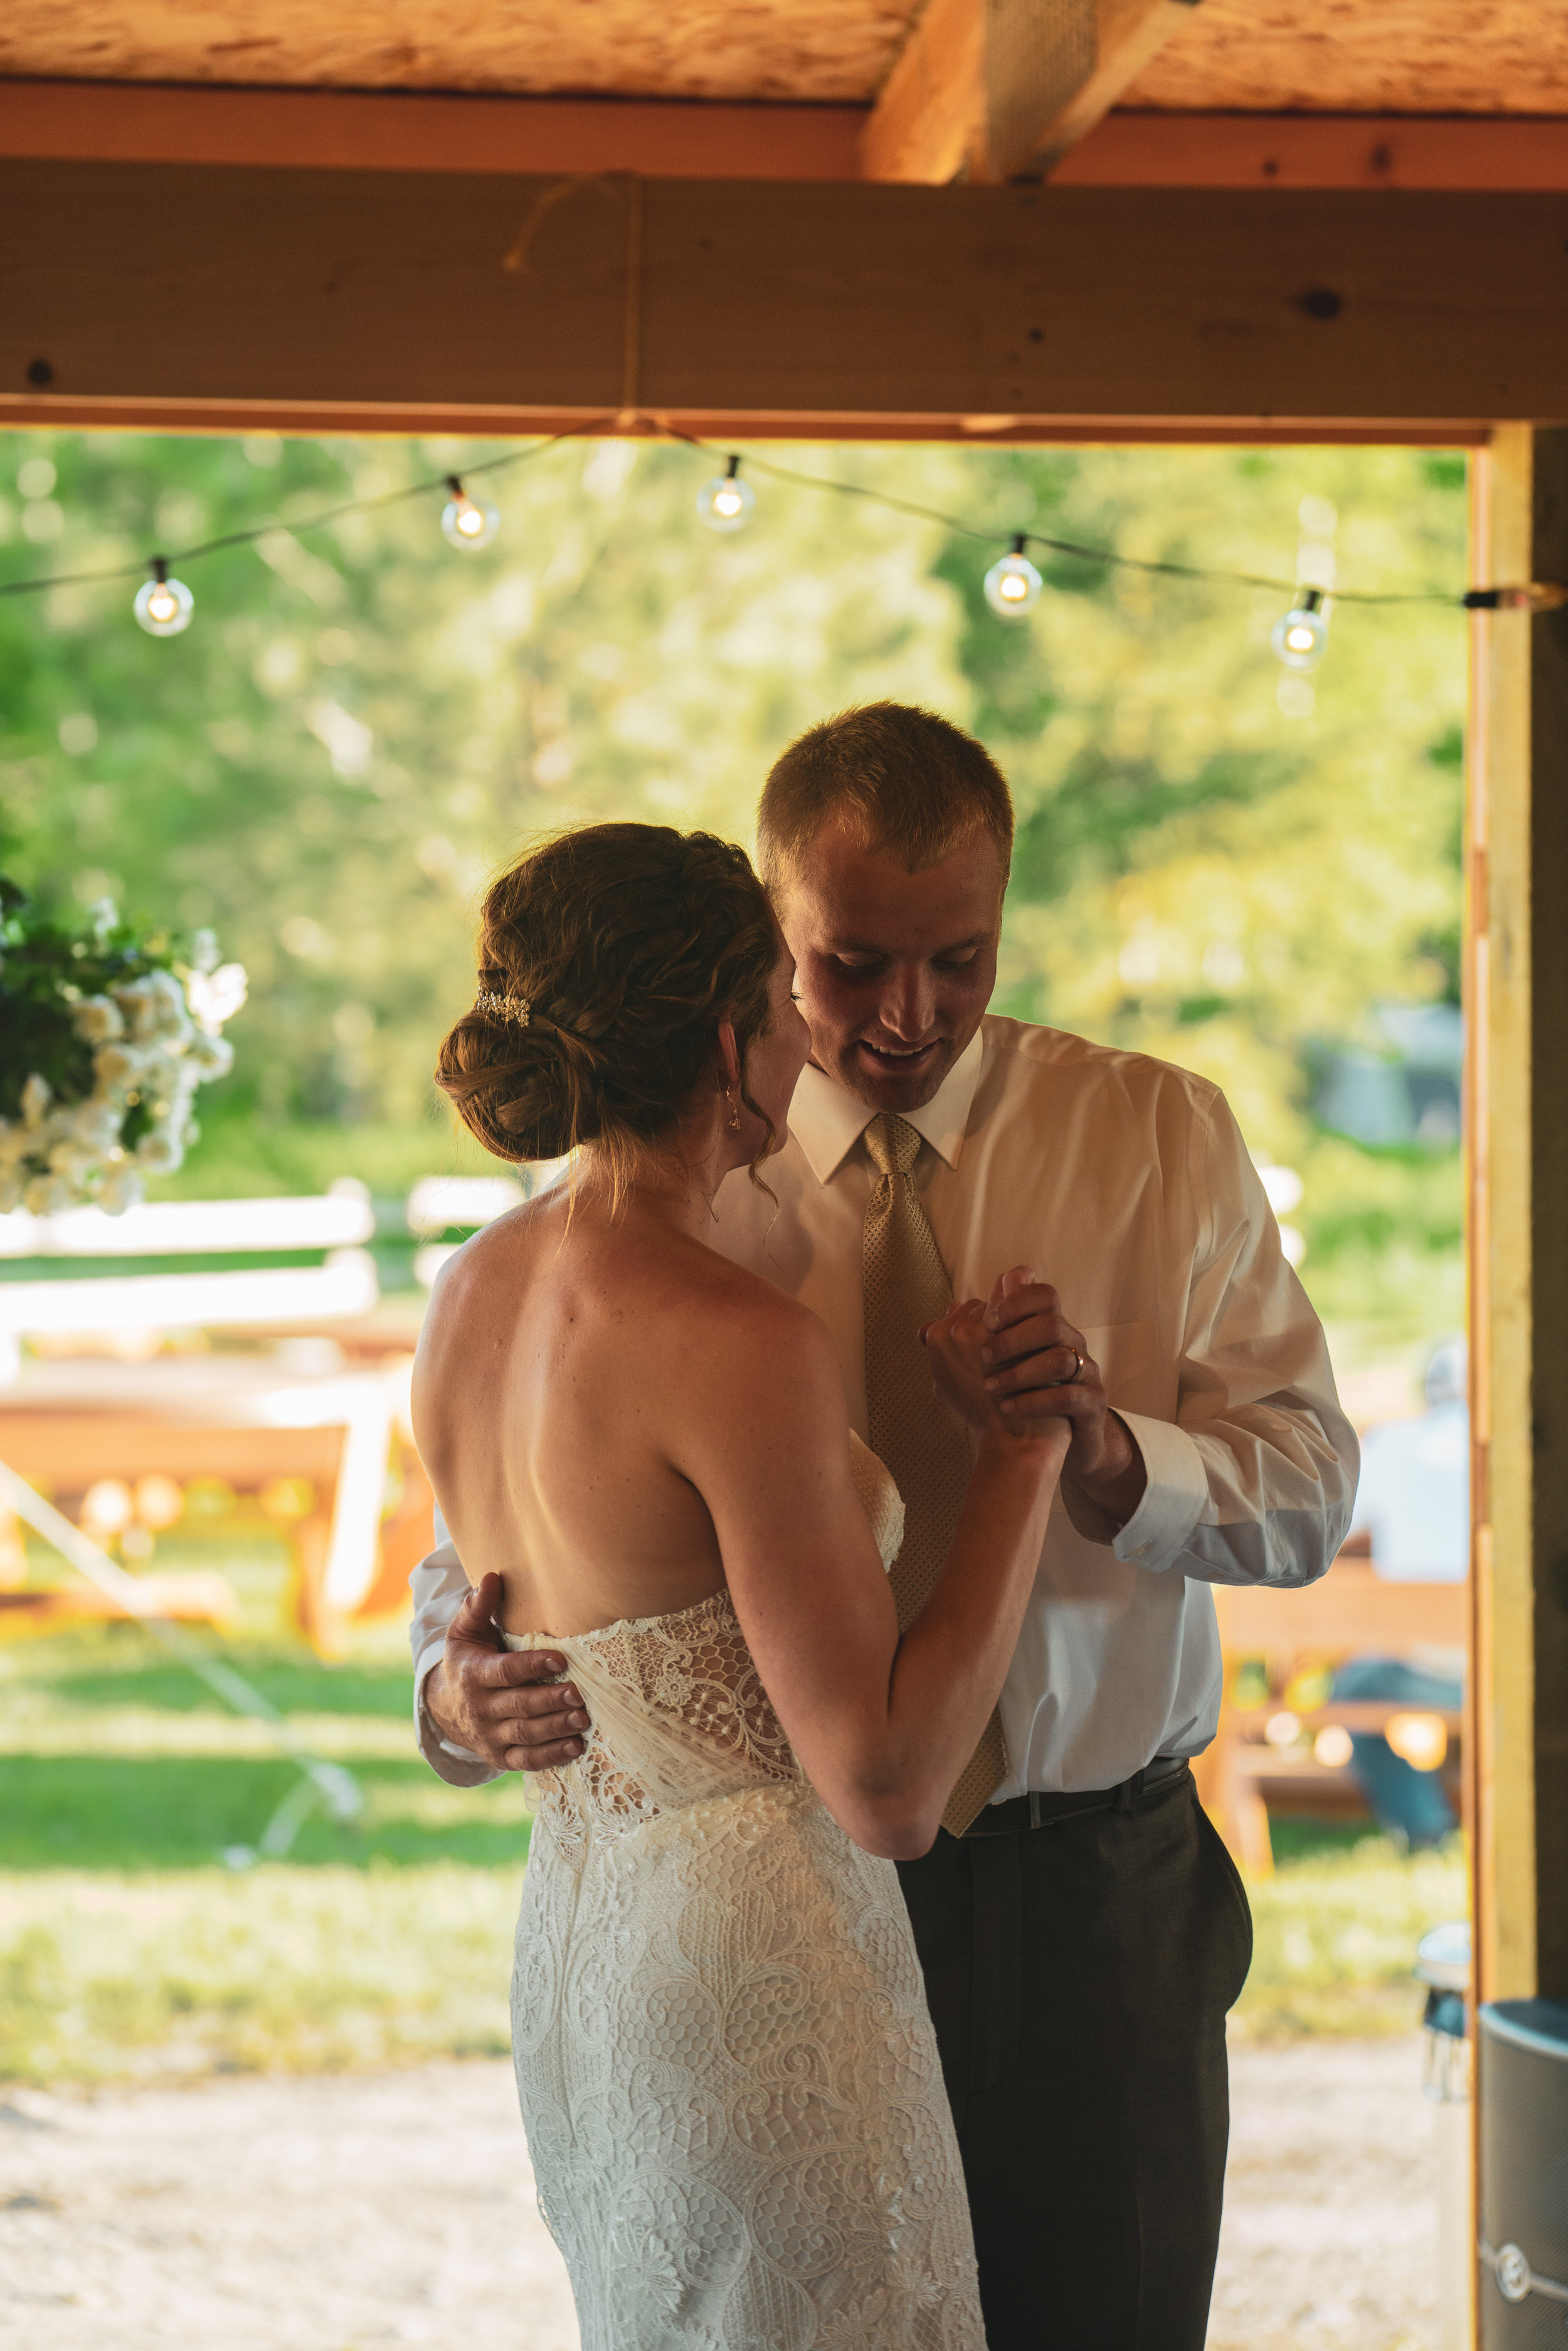 The bride and groom dance during their wedding reception in Lewistown, Montana